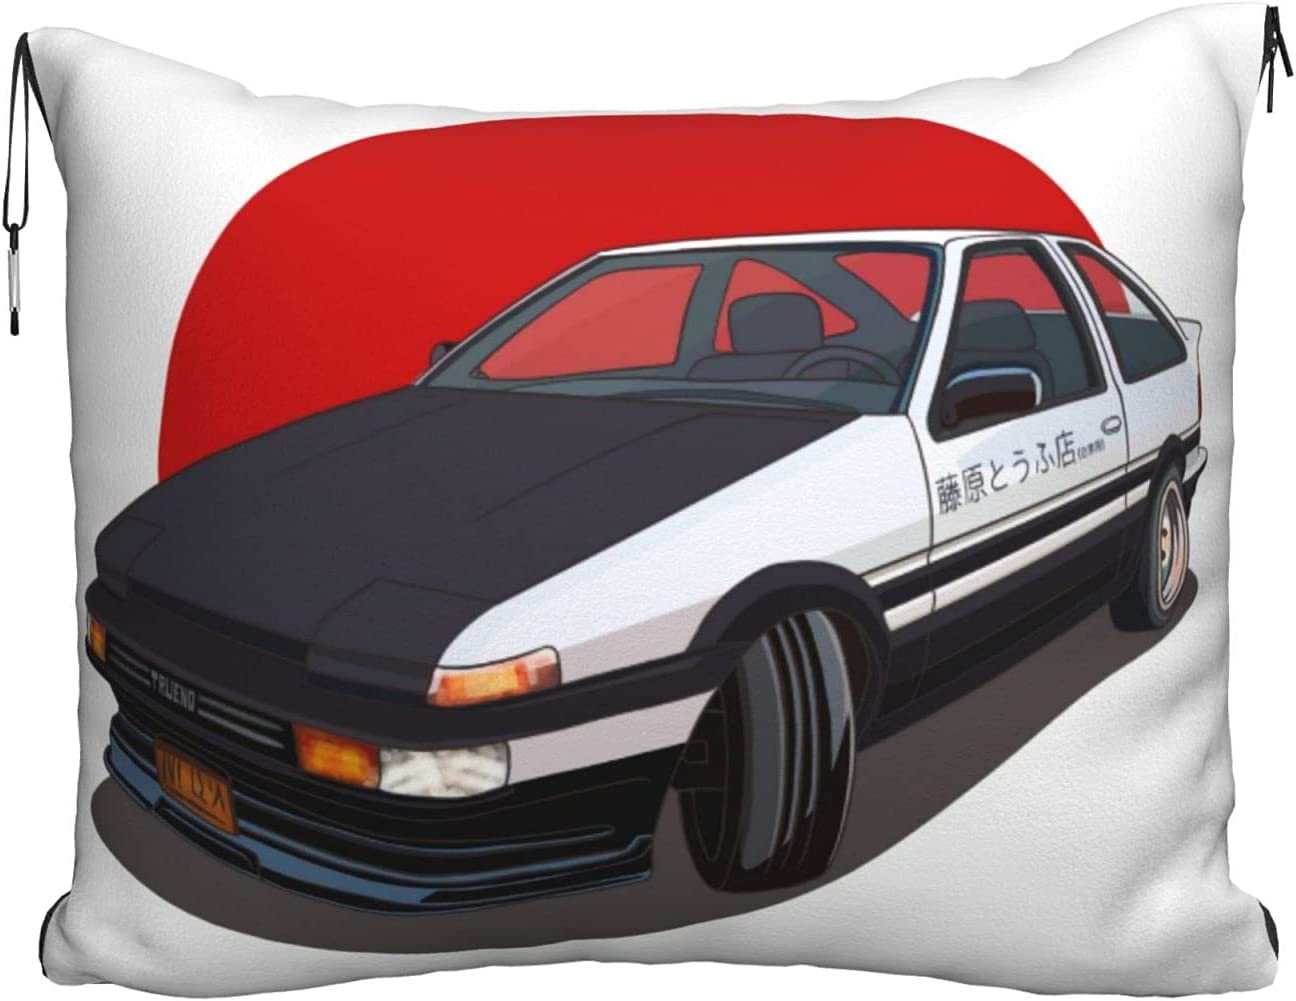 Initiald Travel Blanket and Pillow Set - 2 Velvet in 1 Sale SALE% OFF + NEW before selling ☆ Flannel